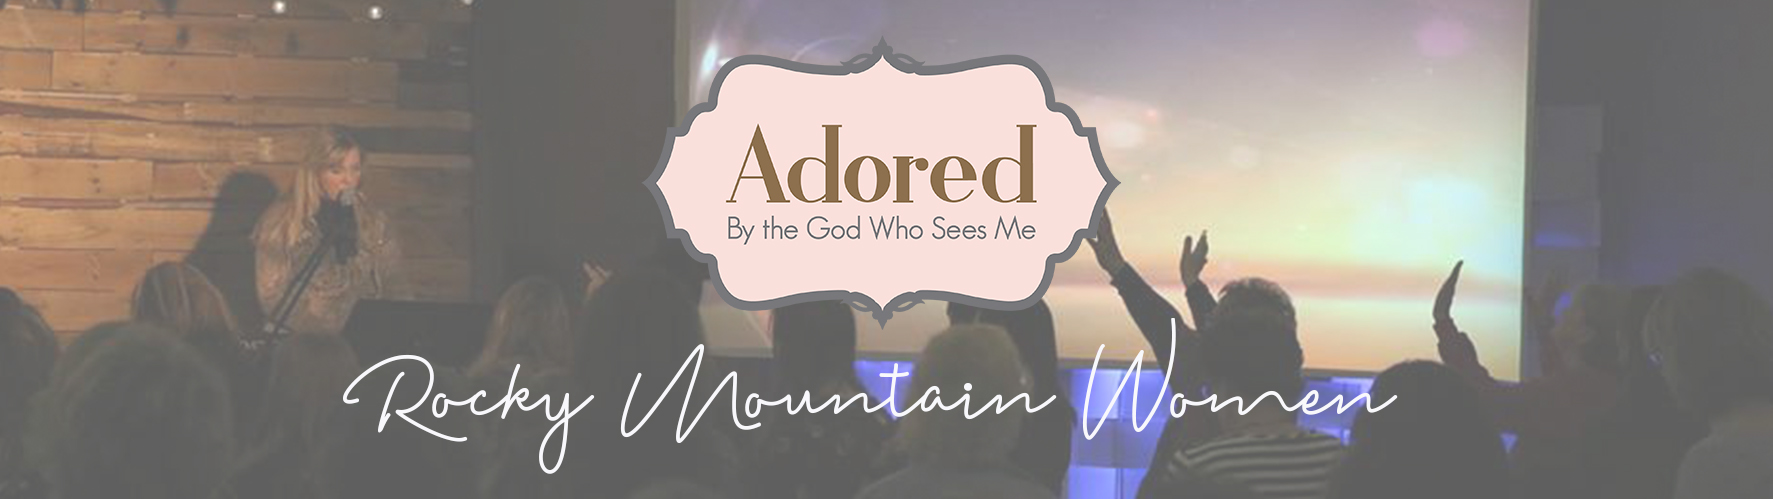 Women's Ministry – Rocky Mountain Ministry Network